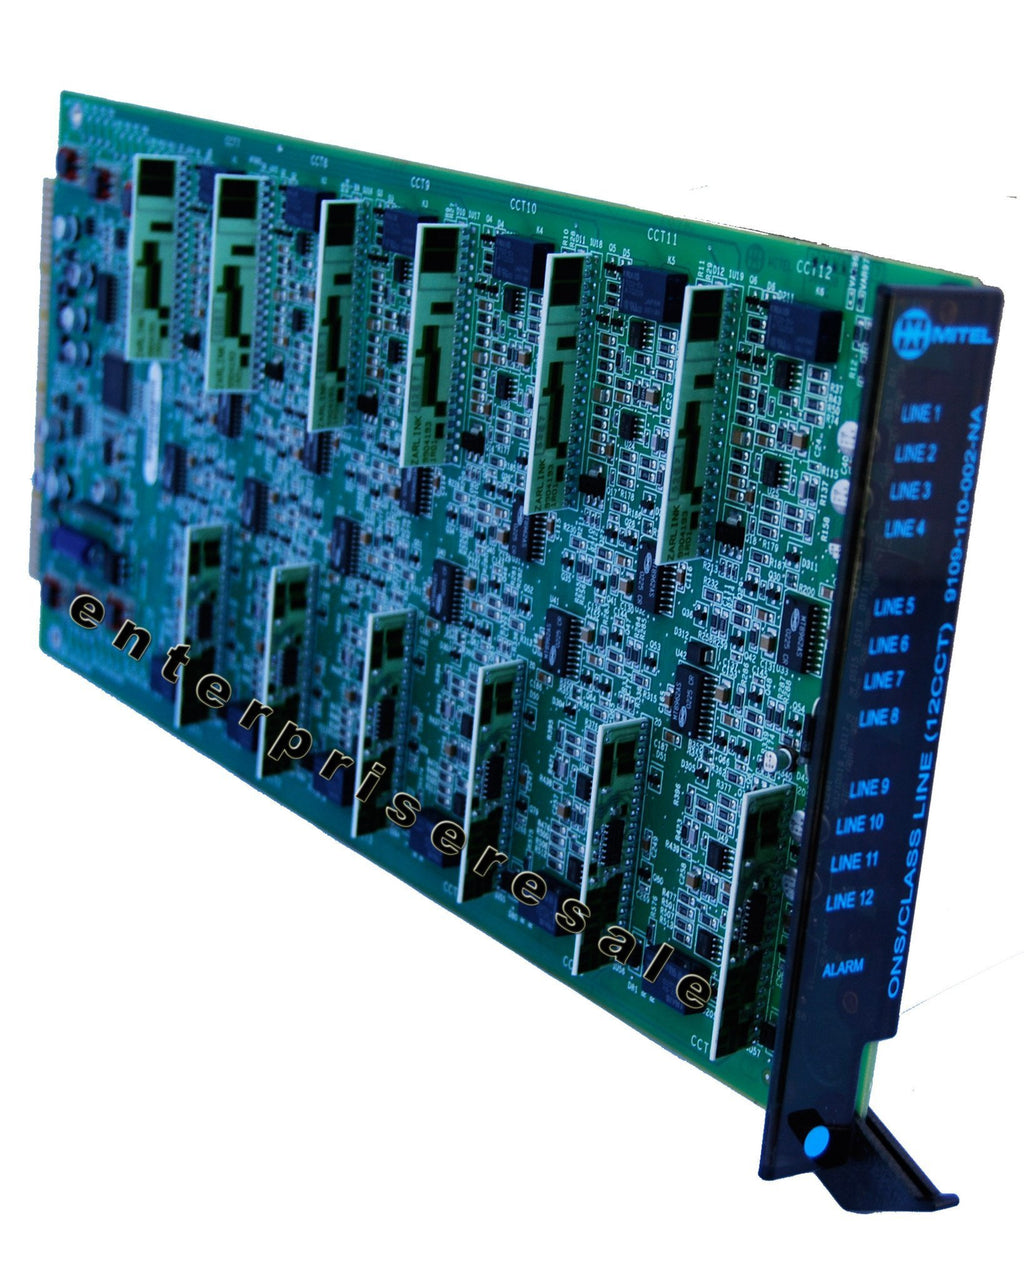 Mitel Phone Switching Systems, PBXs Mitel (9109-110-002-NA) ONS/CLASS LINE blue ONS Class Refurb